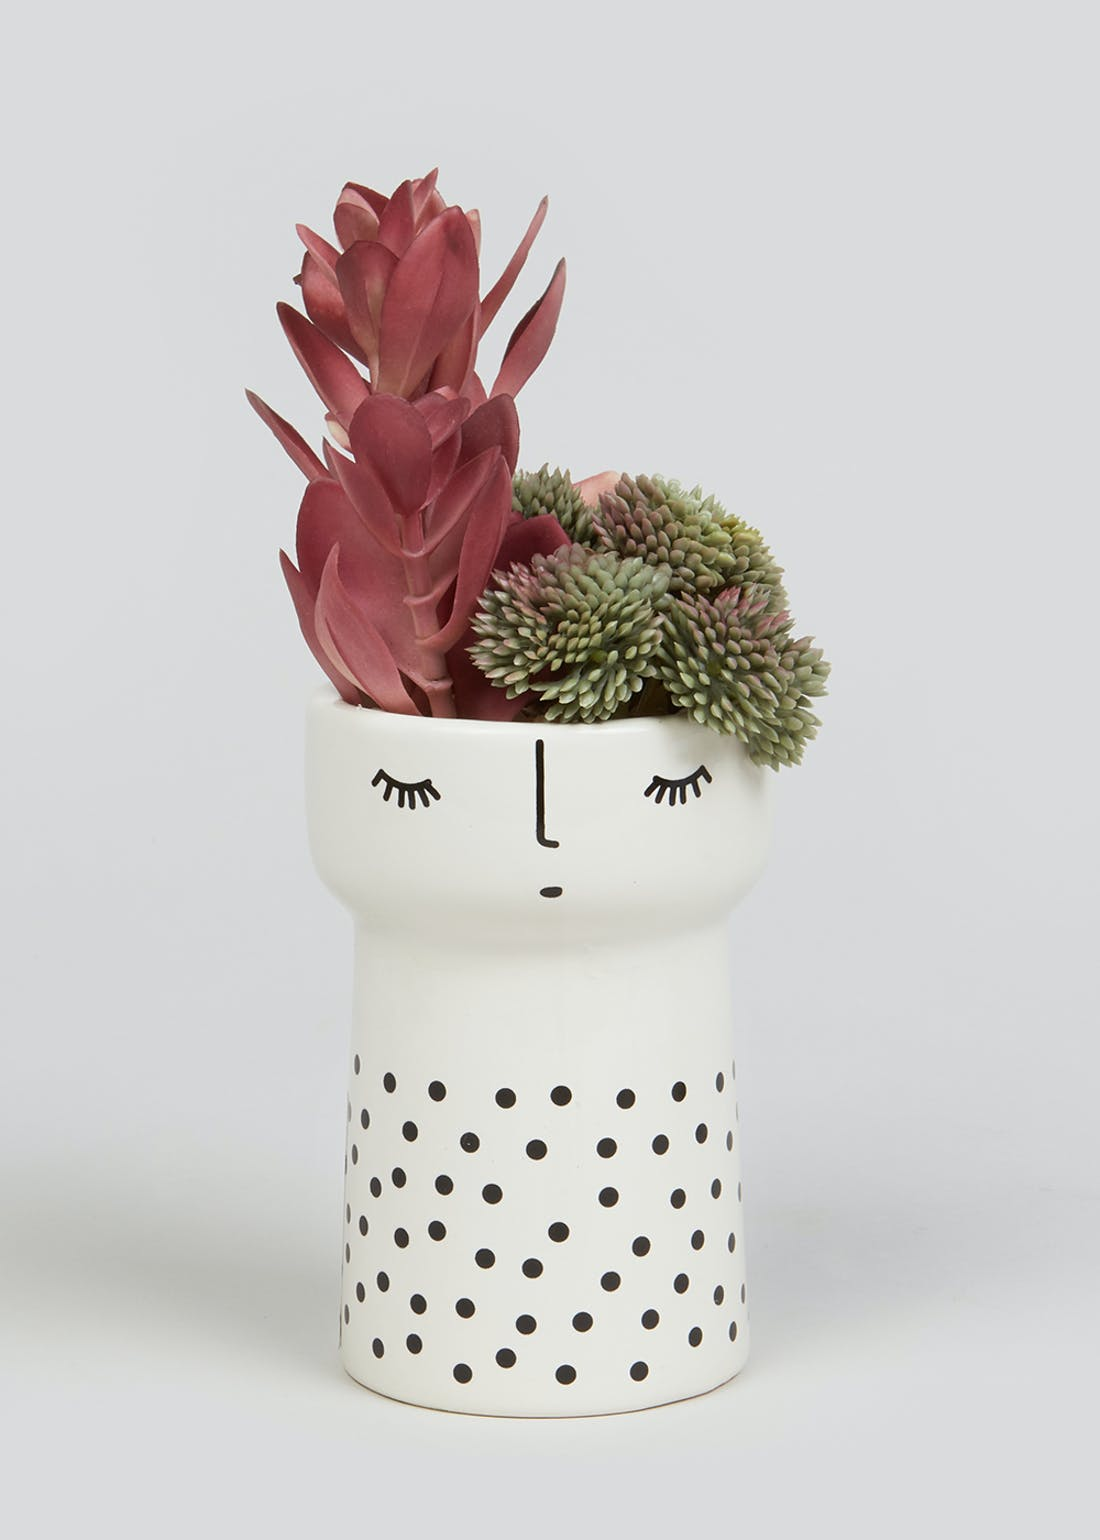 Hers Ceramic Planter with Succulent (22cm x 8cm x 8cm)